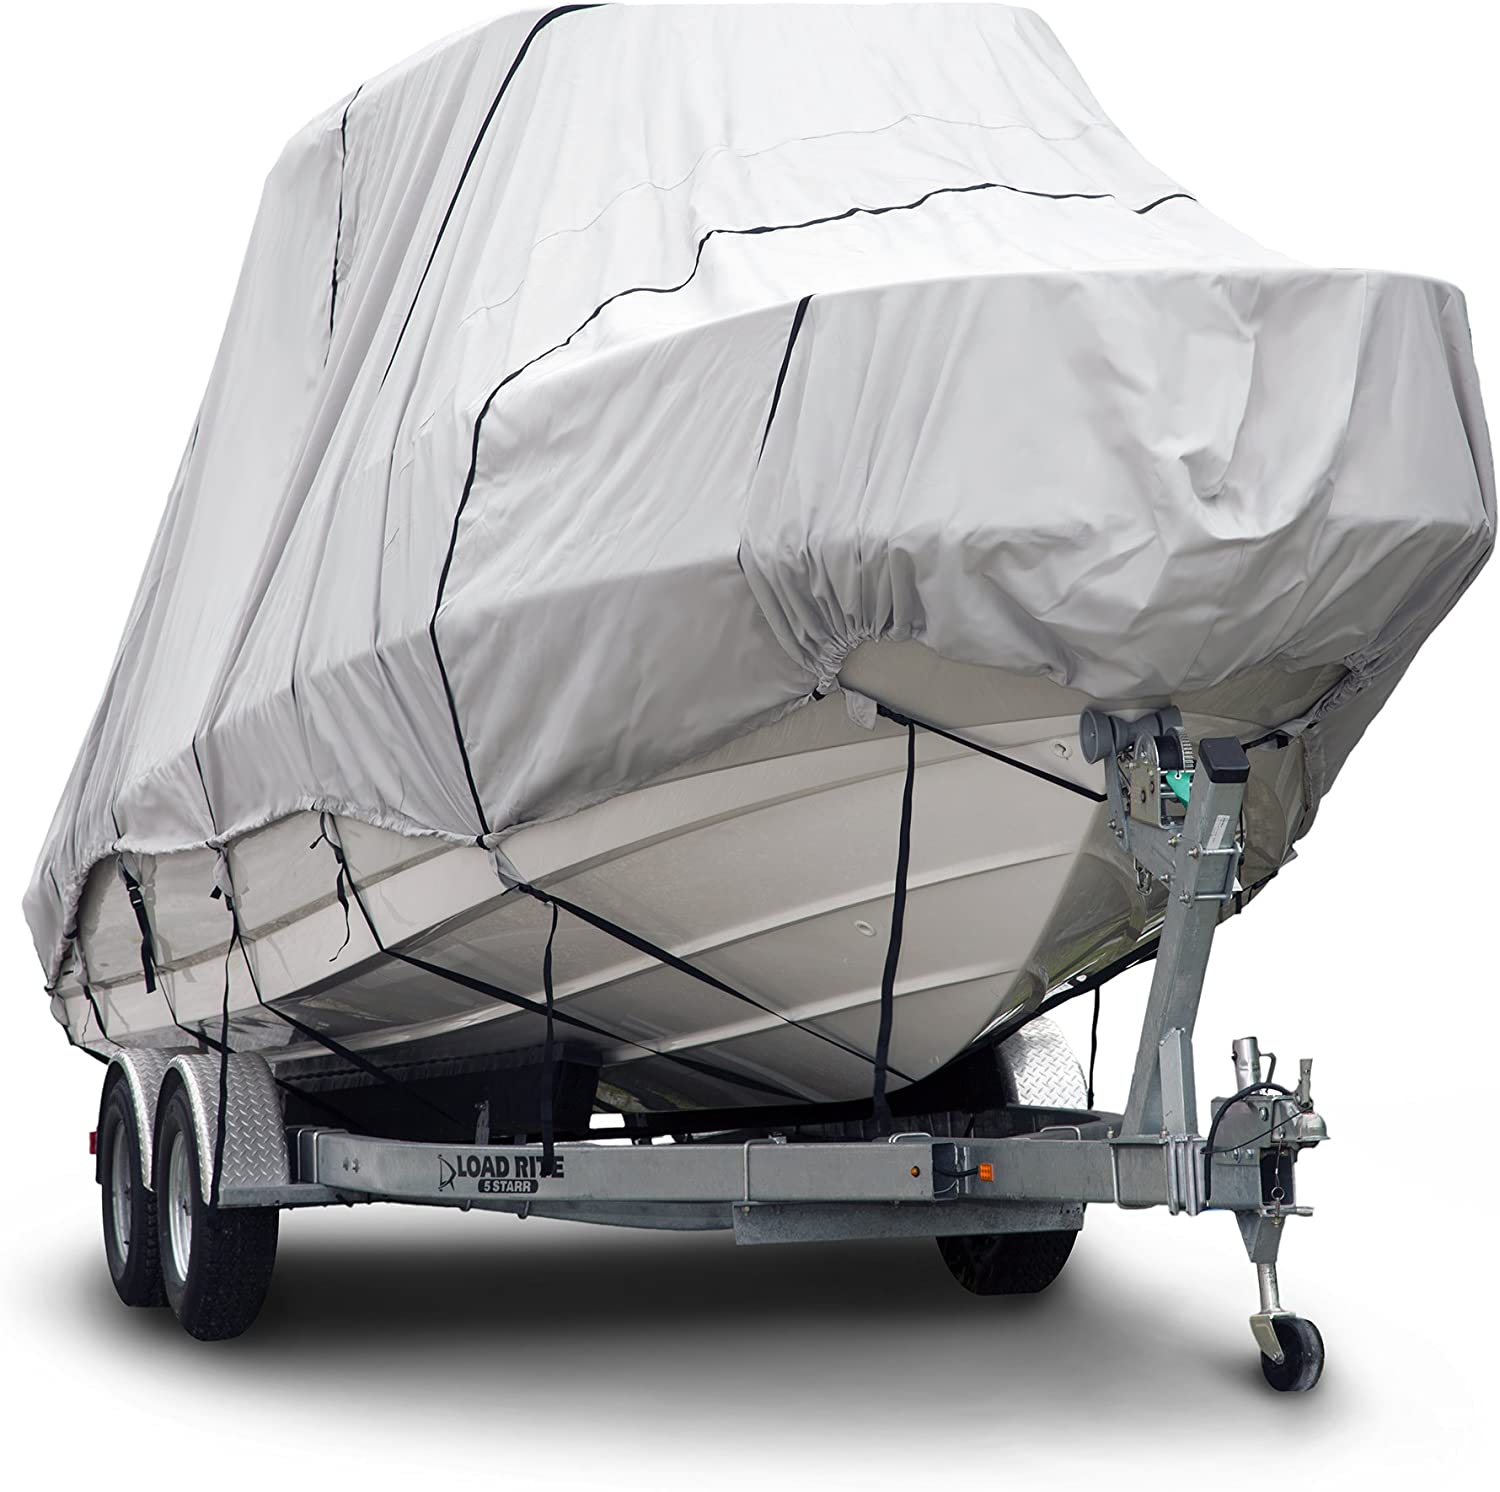 Budge B 621 X6 600 Denier Hard T Top Boat Cover Gray 20 22 Long Beam Width Up To 106 Waterproof Uv Resistant